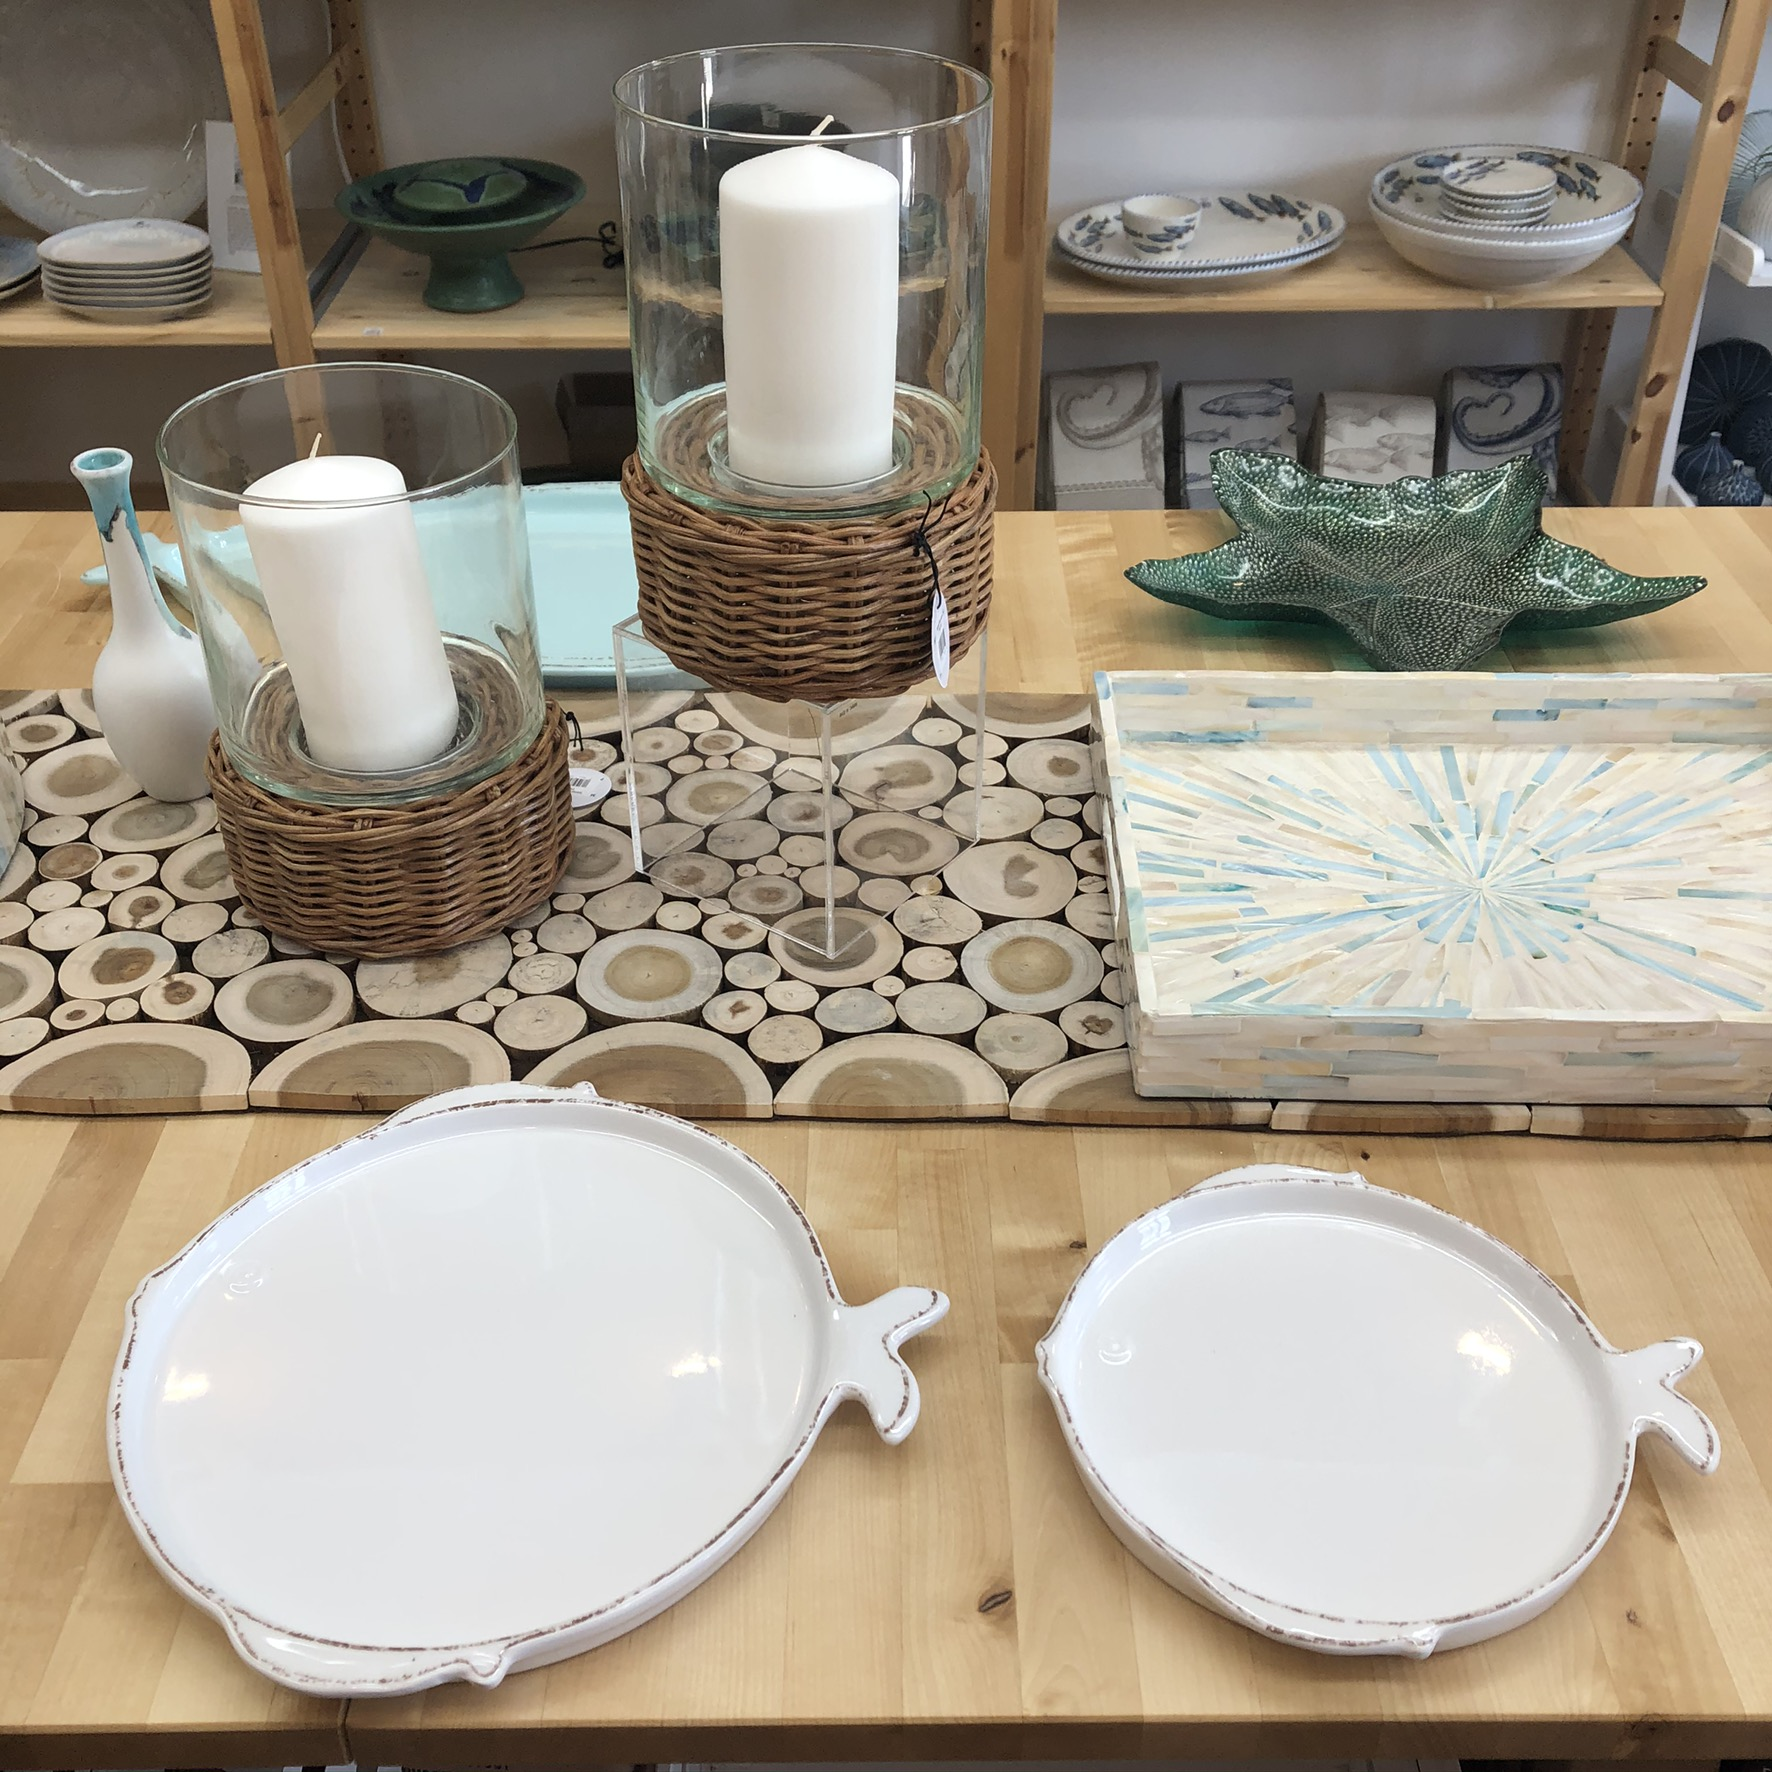 fish shaped salad plate and dinner plate on wooden table